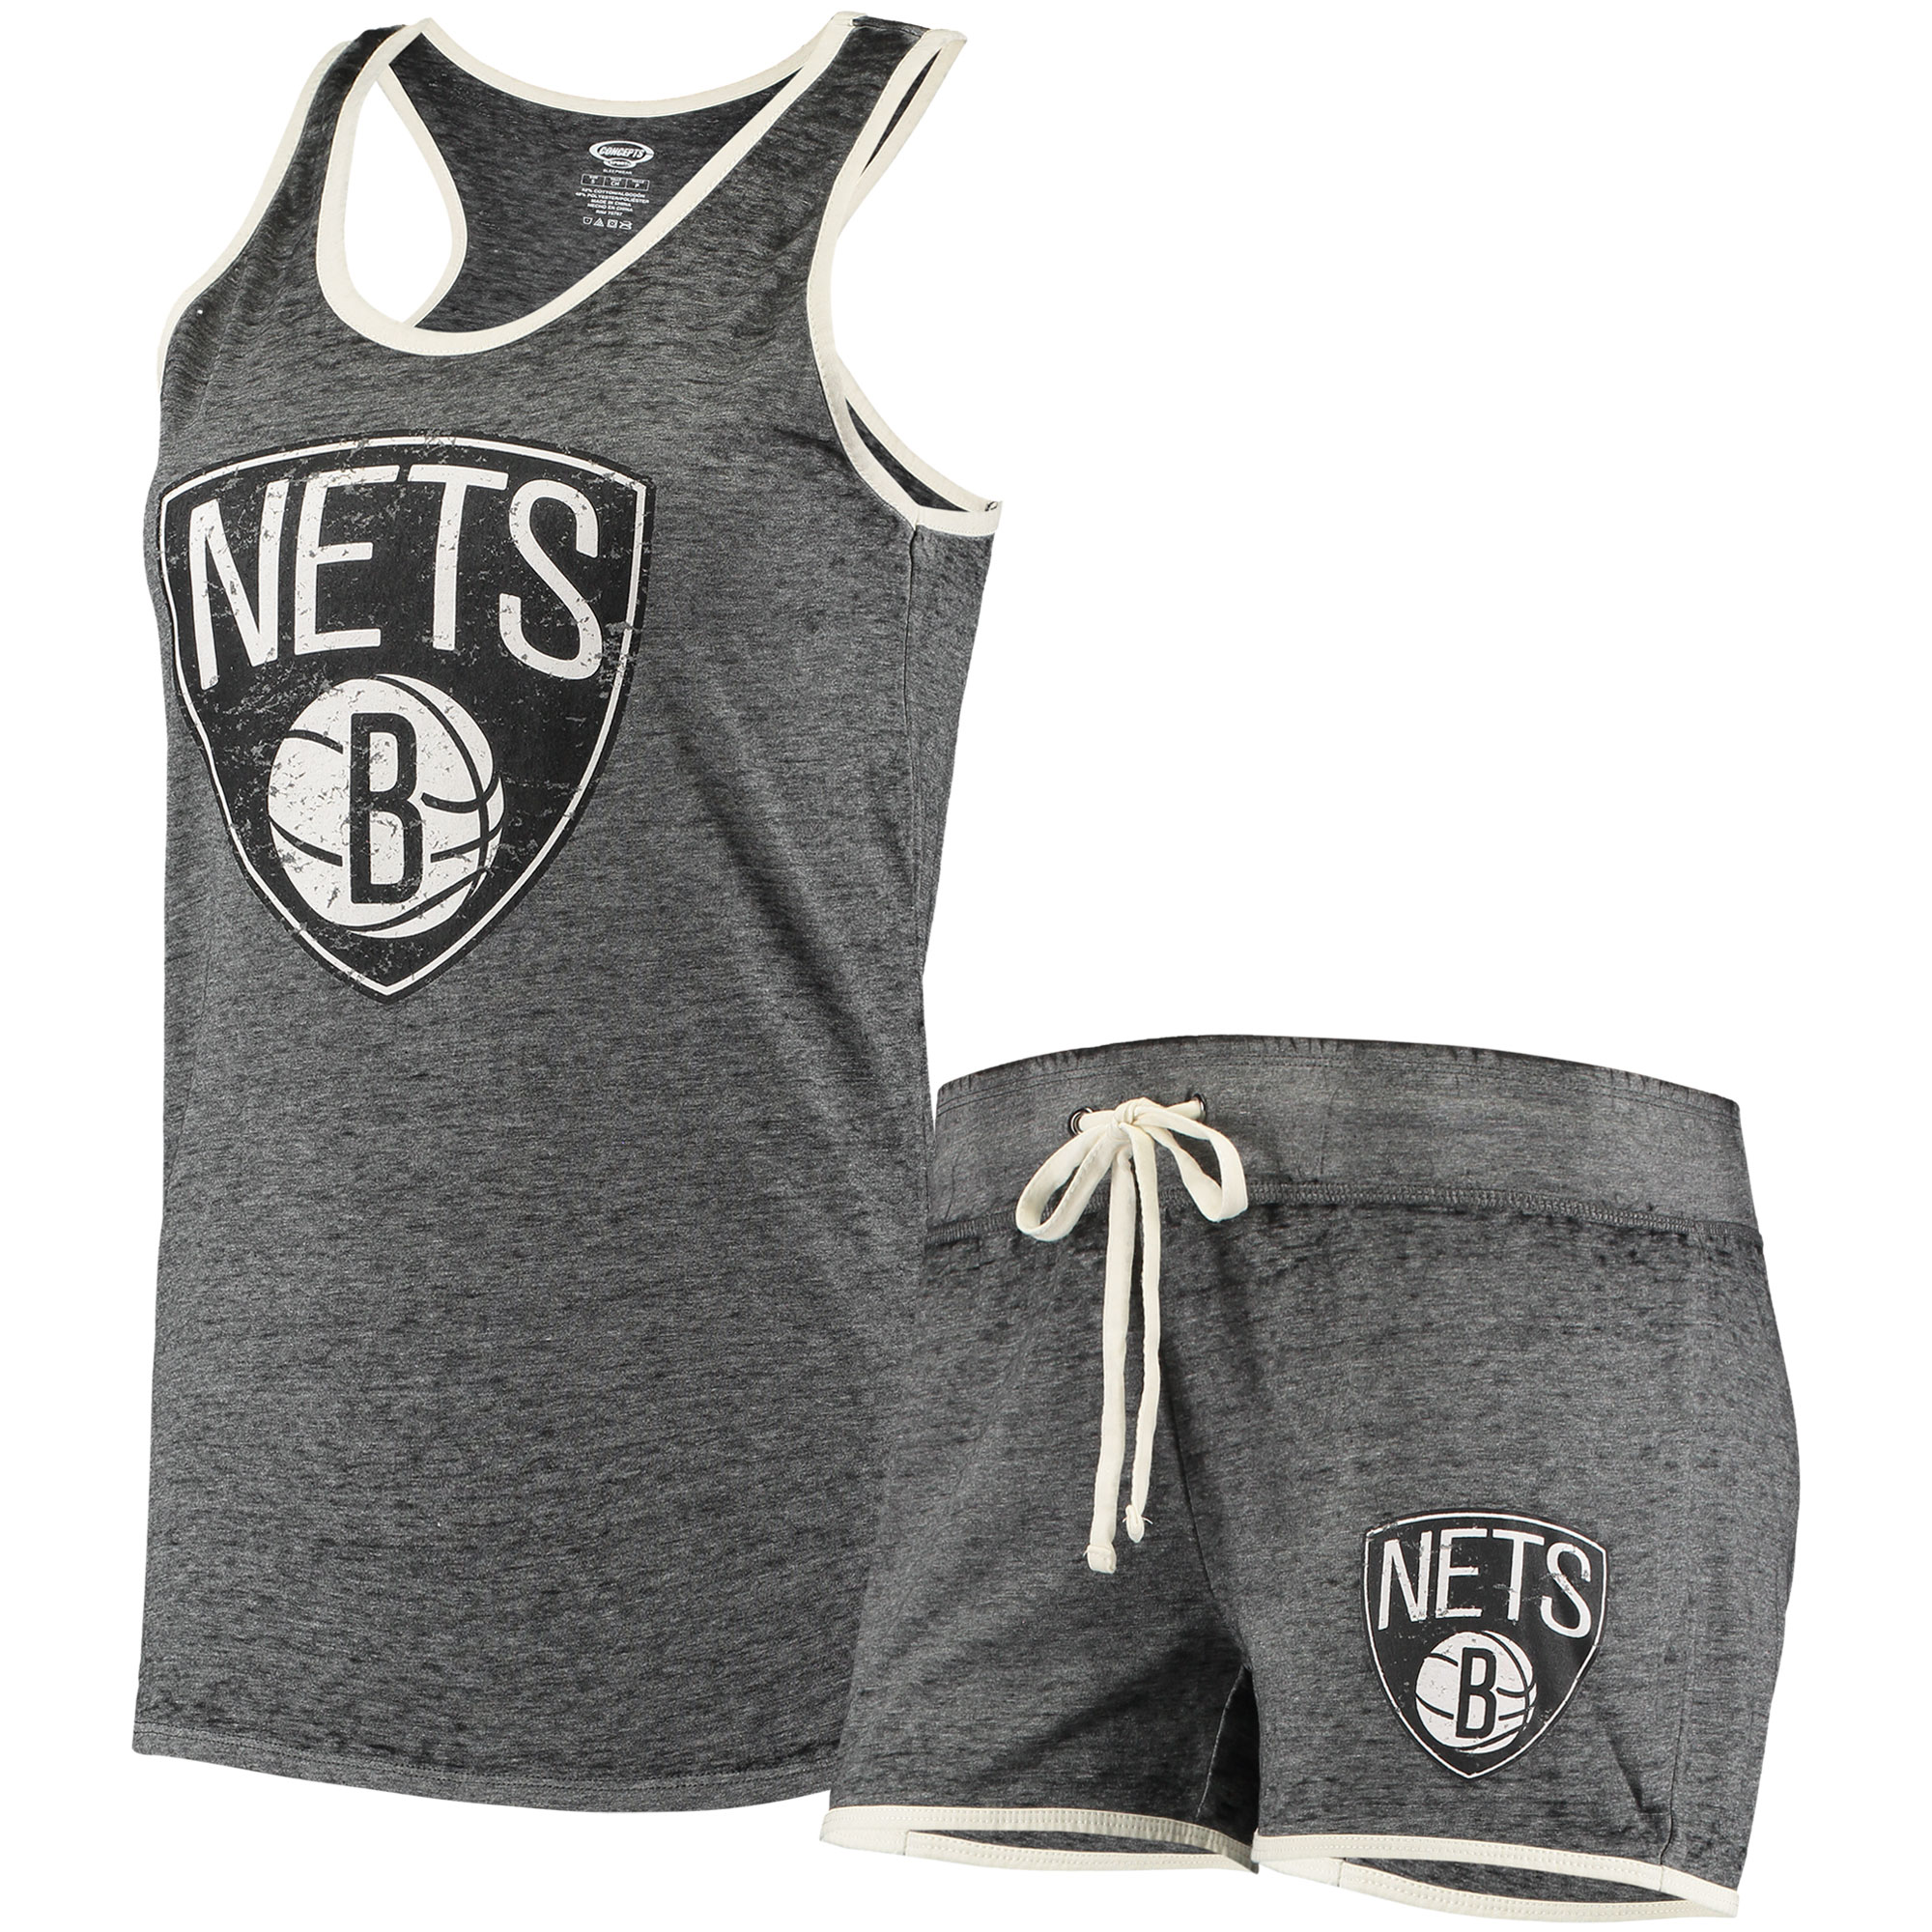 Brooklyn Nets Concepts Sport Women's Loyalty Tank and Shorts Sleep Set - Heathered Charcoal